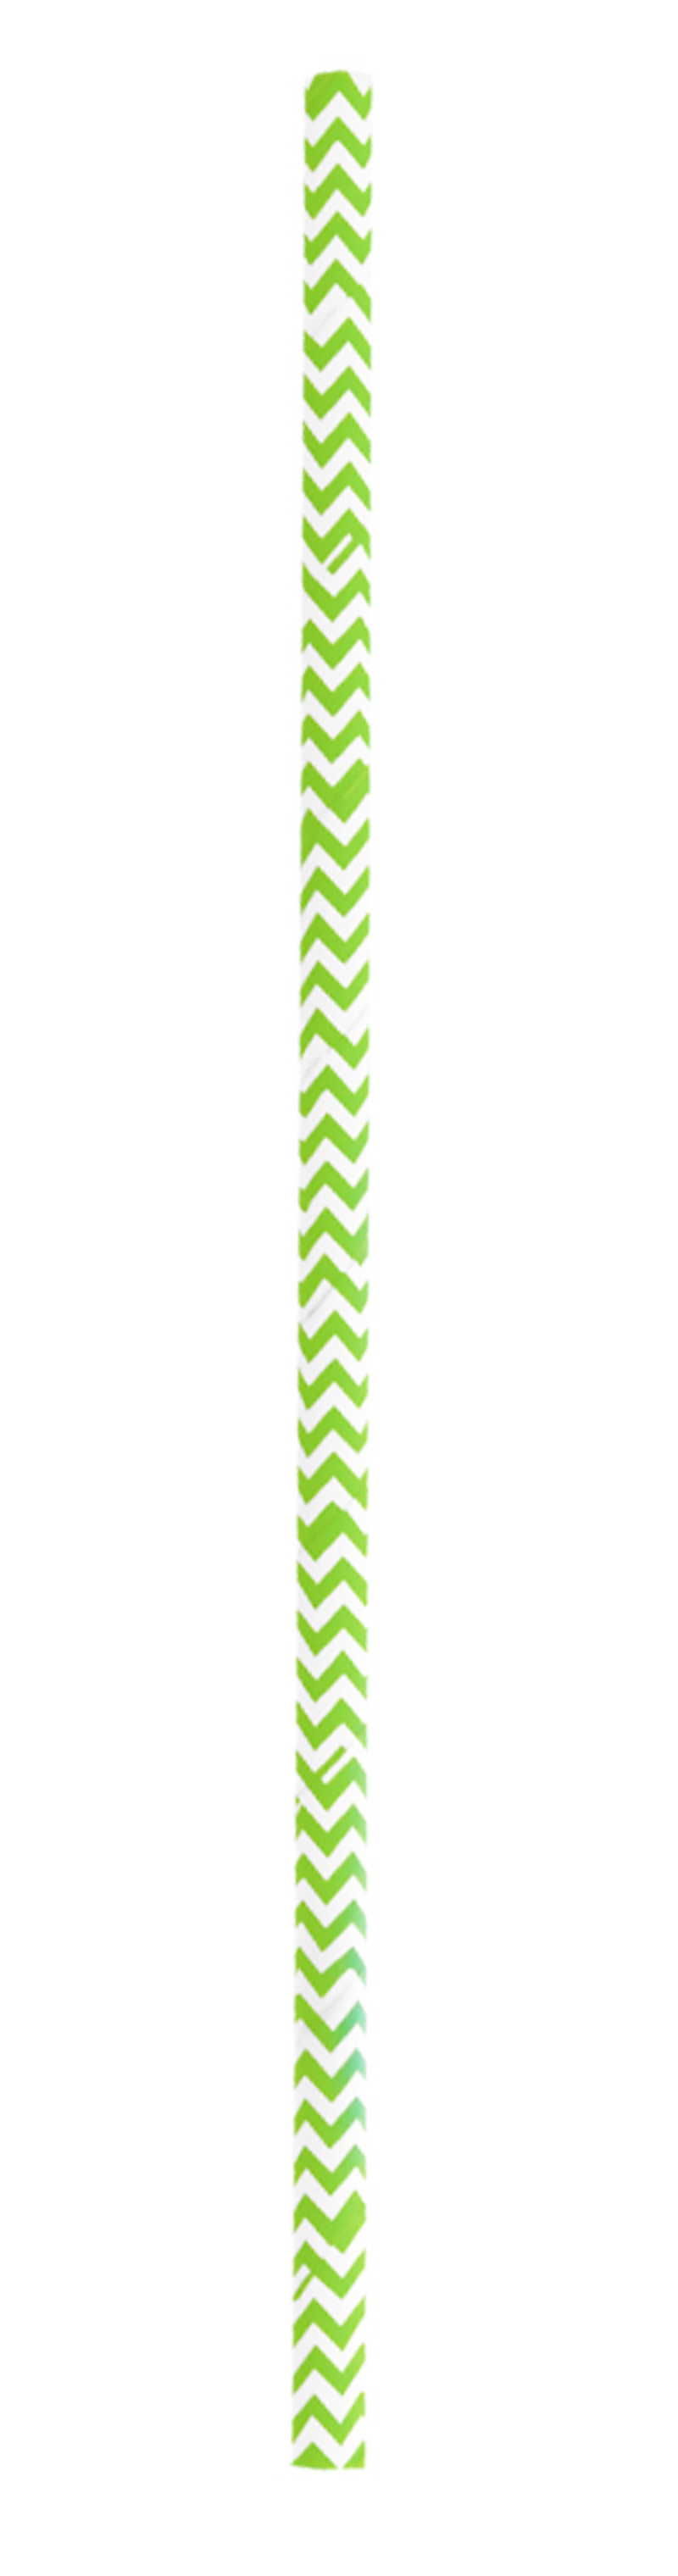 Durable Lime Green & White Chevron Design Paper Straws - 7.75 Inches